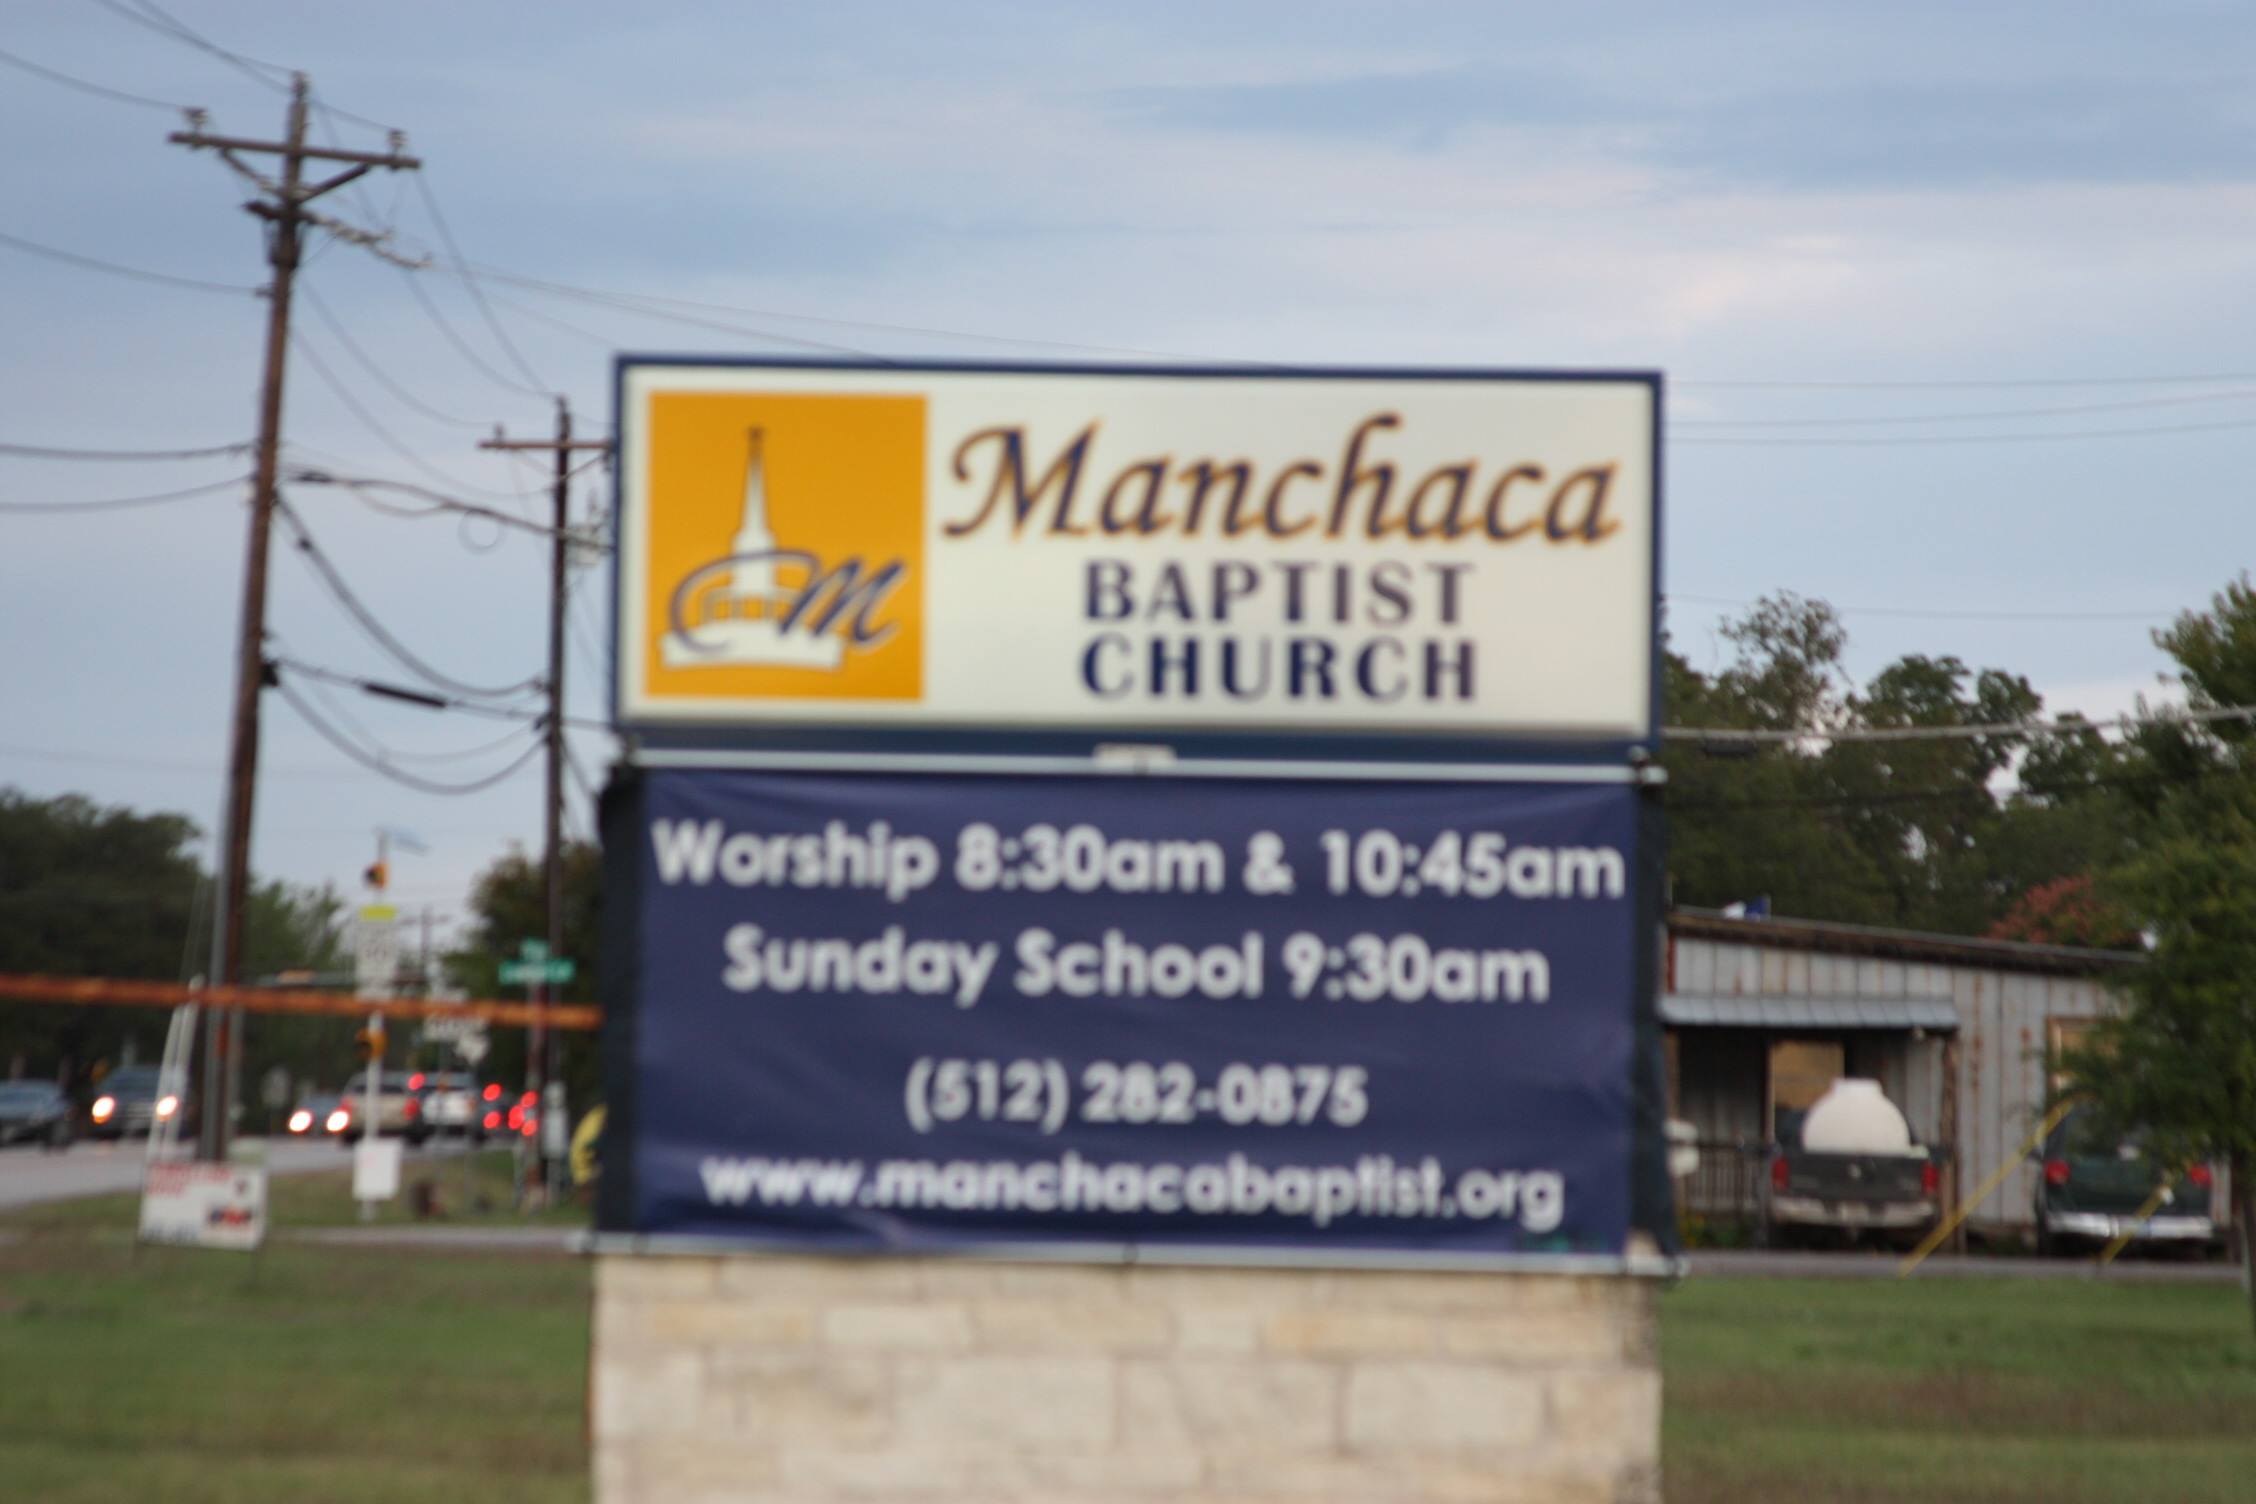 manchaca personals Classifieds for manchaca, texas manchaca classifieds resources (including craigslist for manchaca): we have collected the best sources for manchaca deals, manchaca.